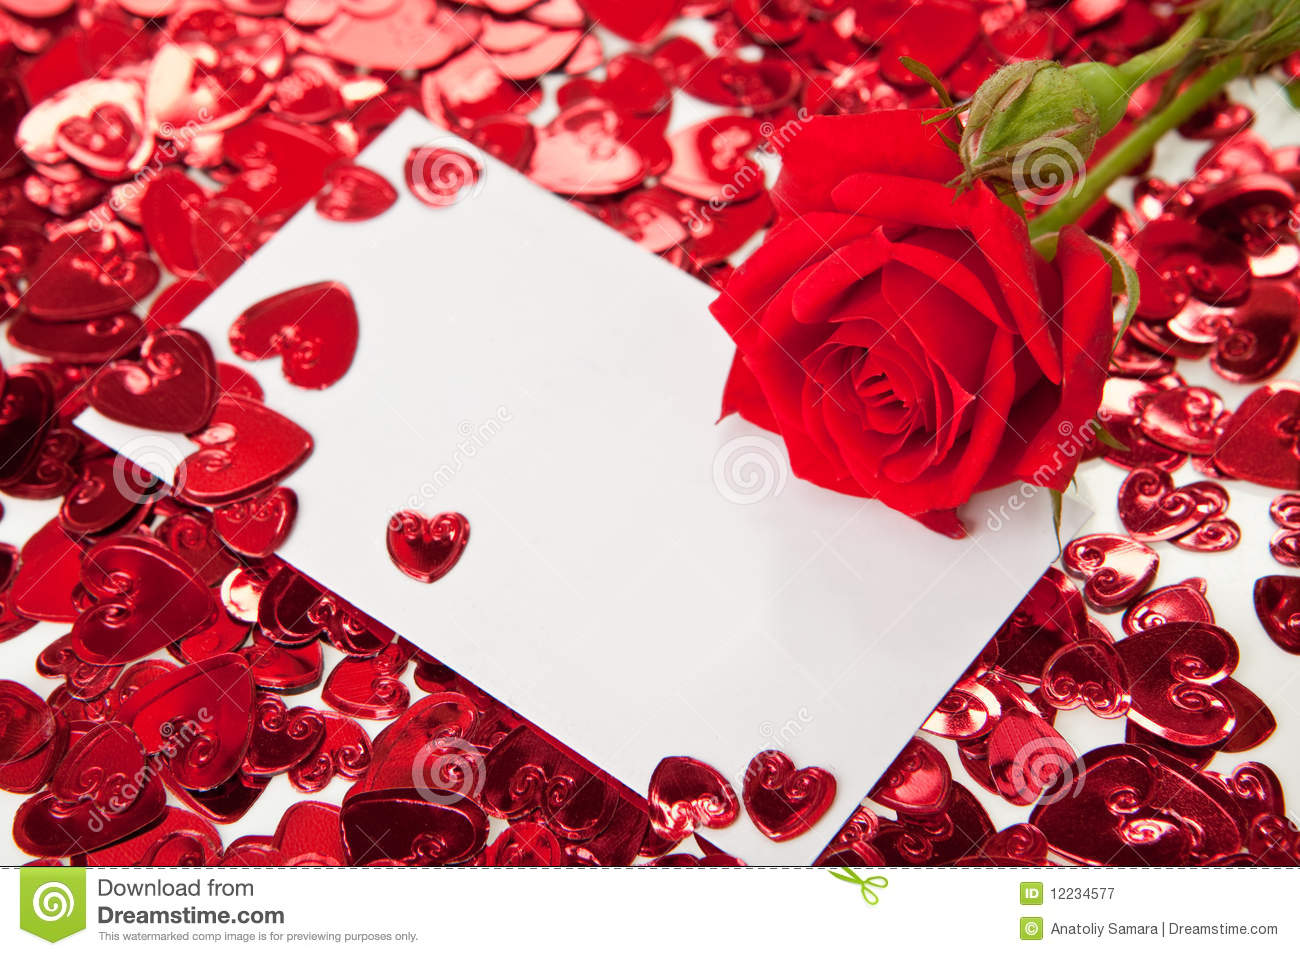 Red Rose And Blank Invitation Card Stock Photo 12234577 - Megapixl